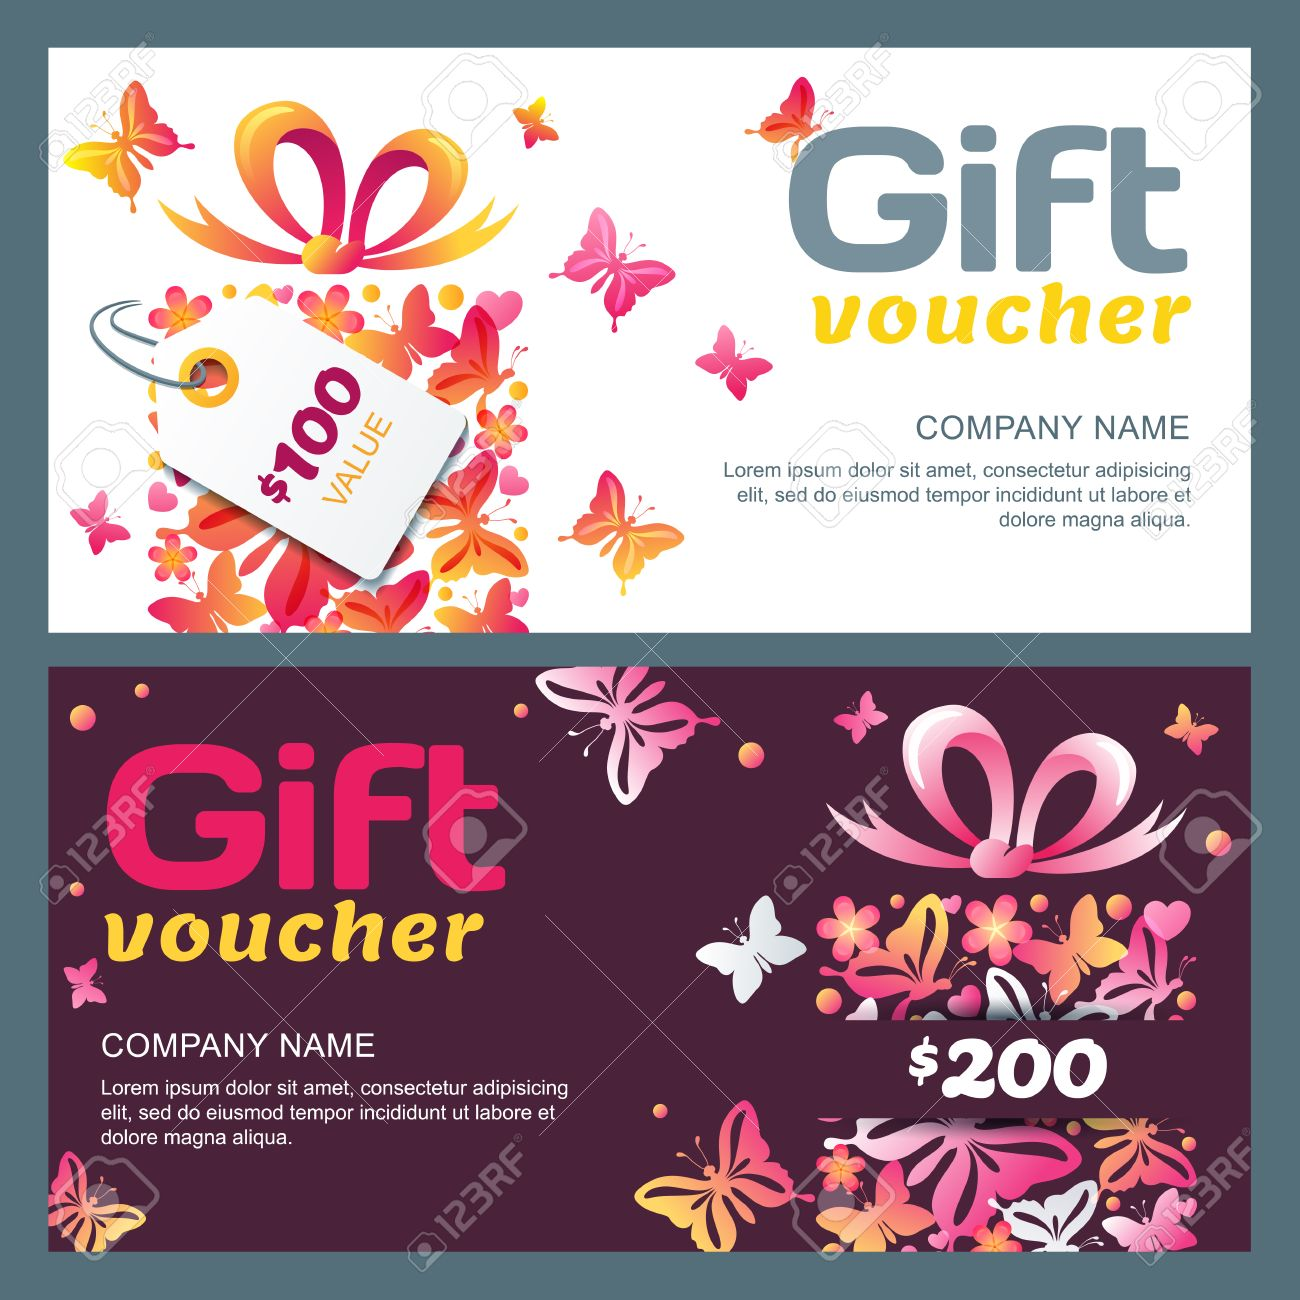 vector gift voucher template gift box and butterflies summer vector vector gift voucher template gift box and butterflies summer or spring holiday card abstract background concept for boutique floral shop